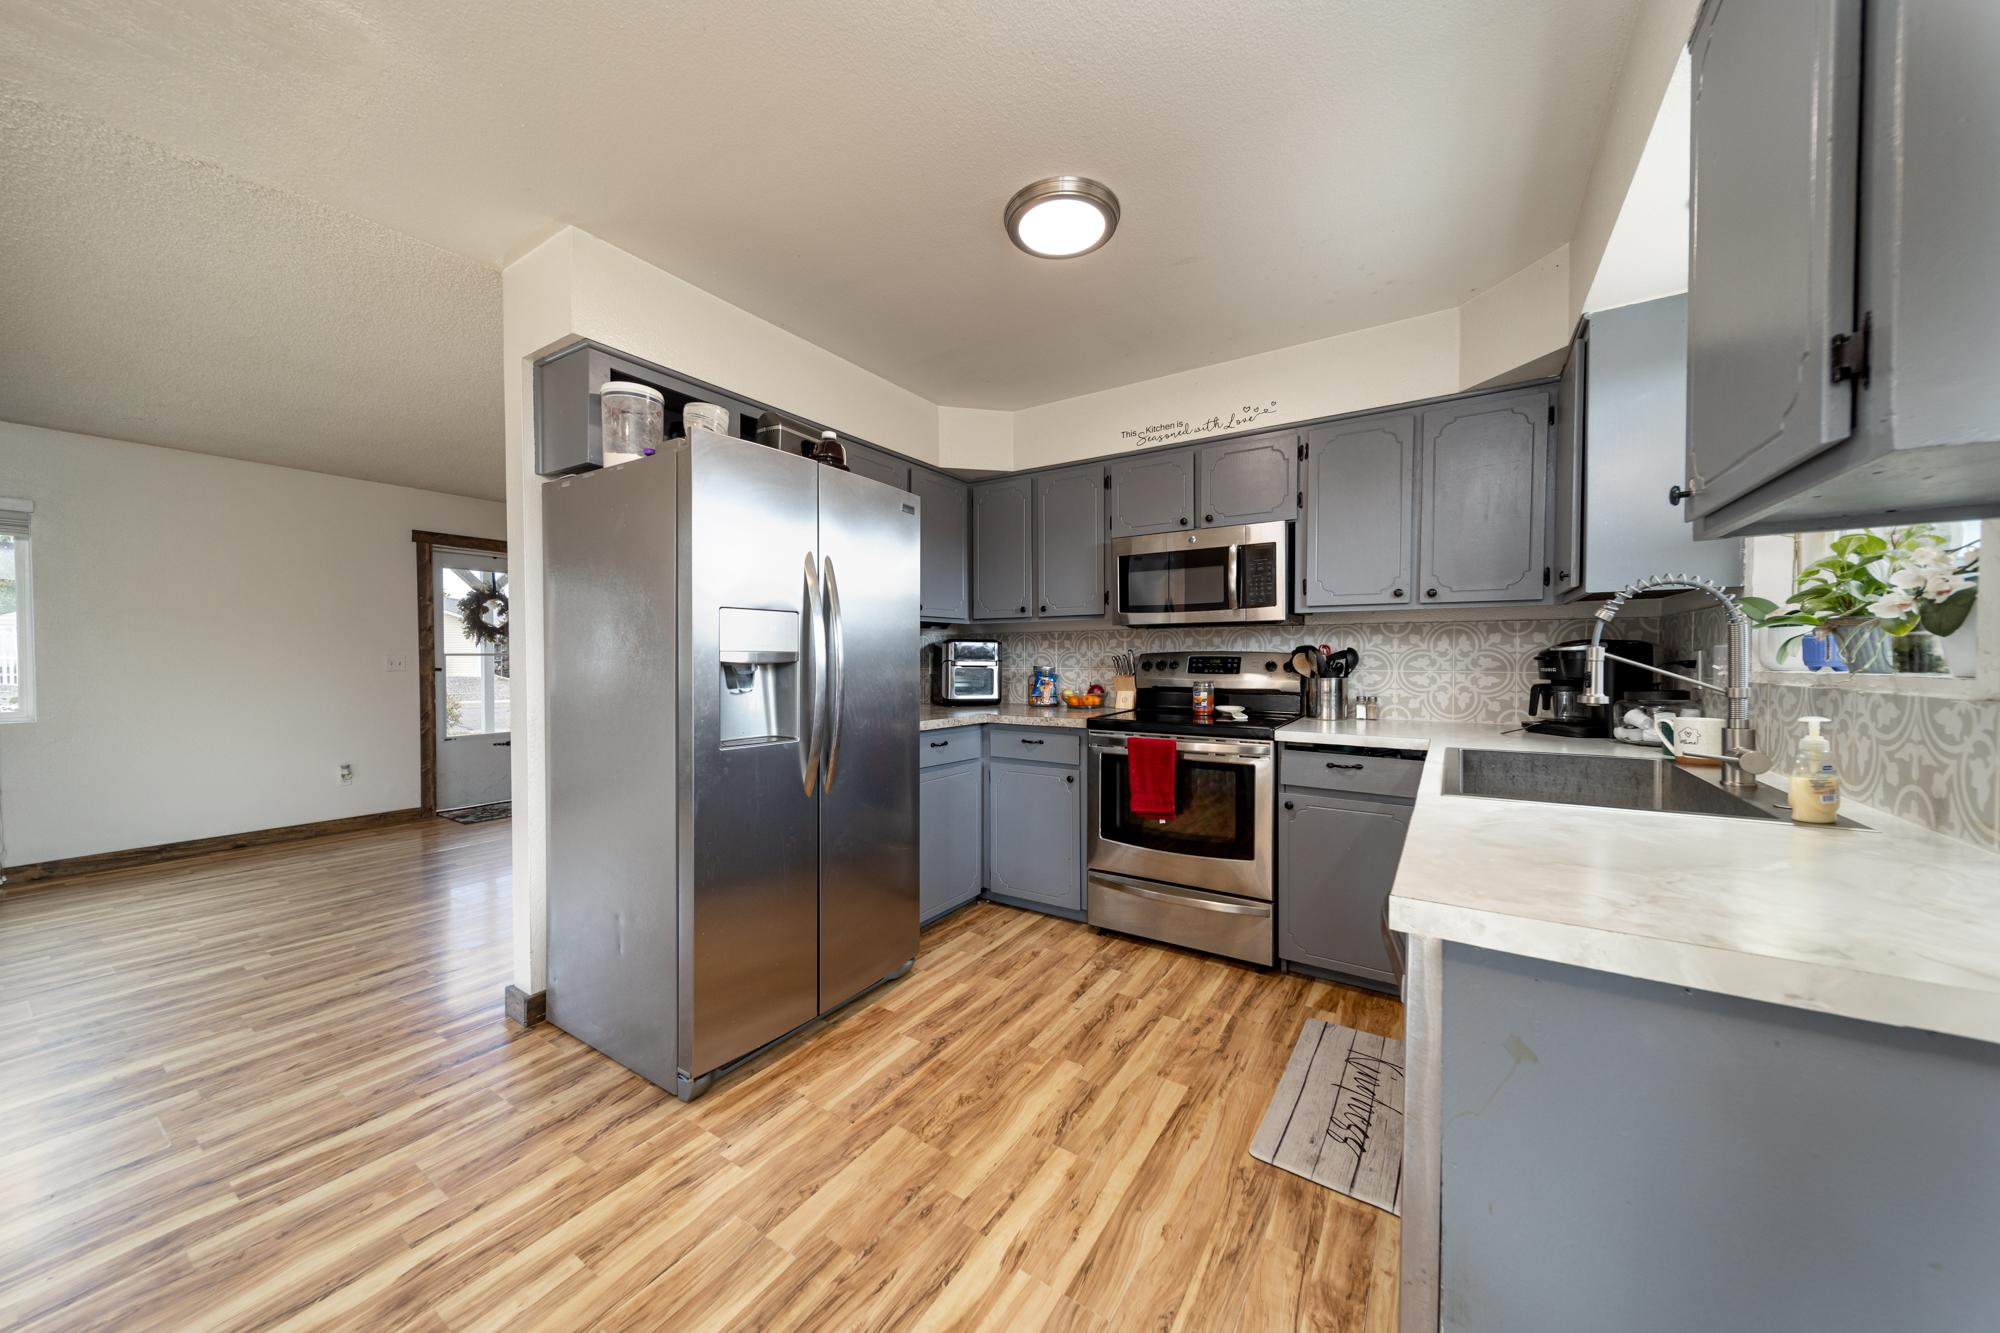 Kitchen with Stainless Appliances - 1117 Centennial Dr Montrose, CO 81401 - Atha Team Real Estate